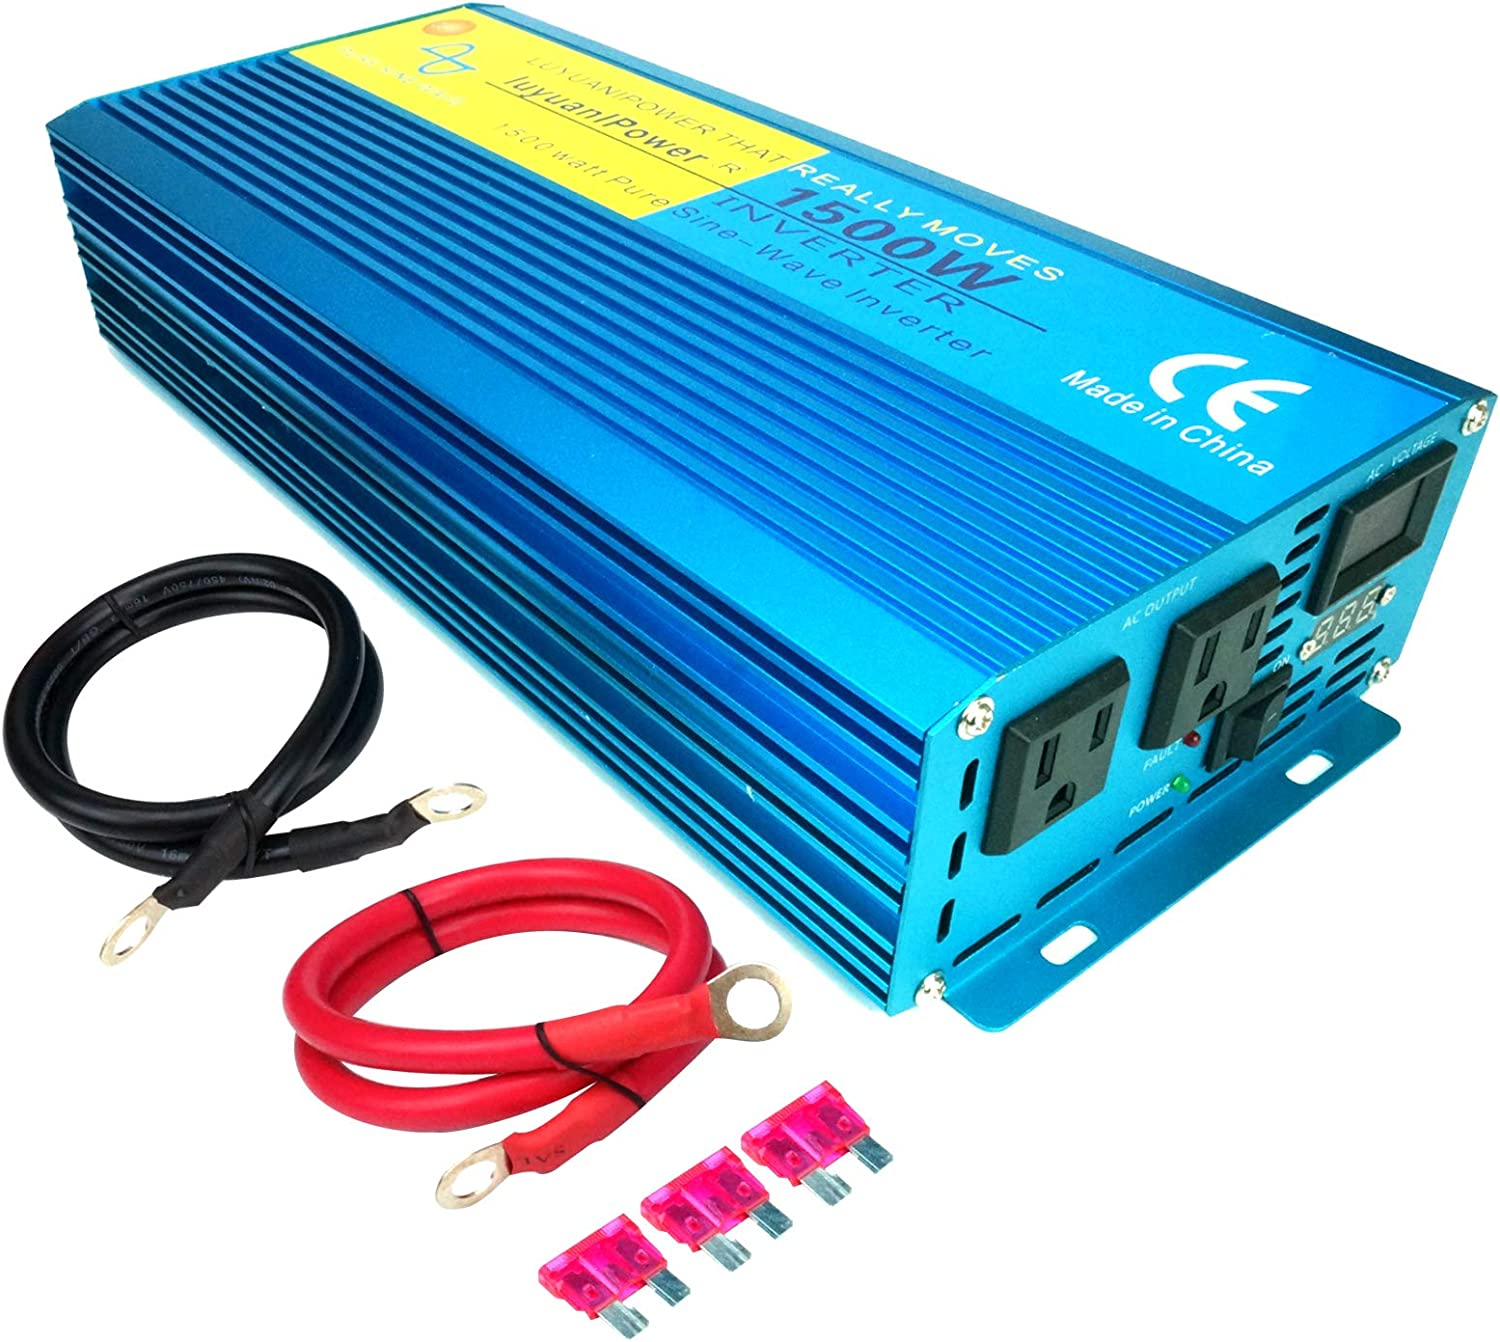 1500W Continuous// 3000W Peak Pure Sine Wave Inverter DC 12V to AC 120V Car Power Inverter with Dual AC Outlets